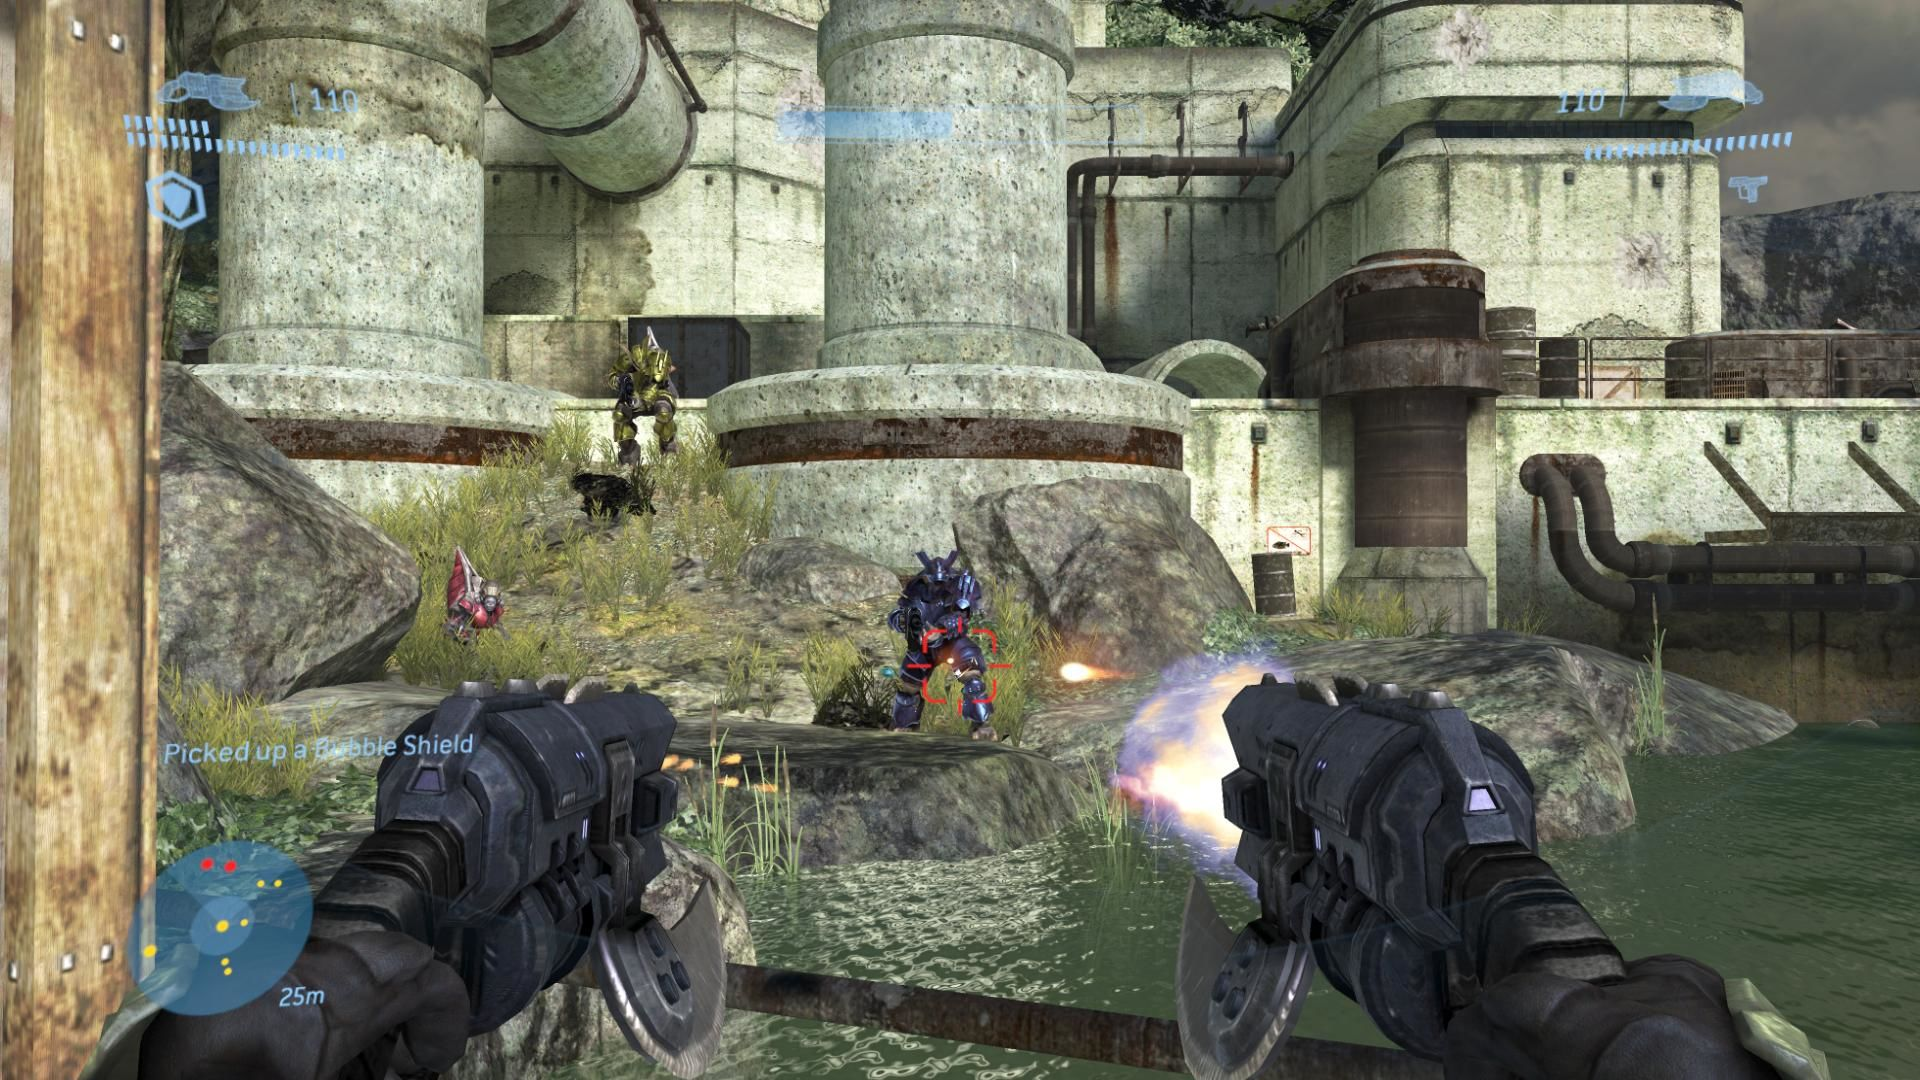 Halo 3 Xbox 360 Double spikers in campaign